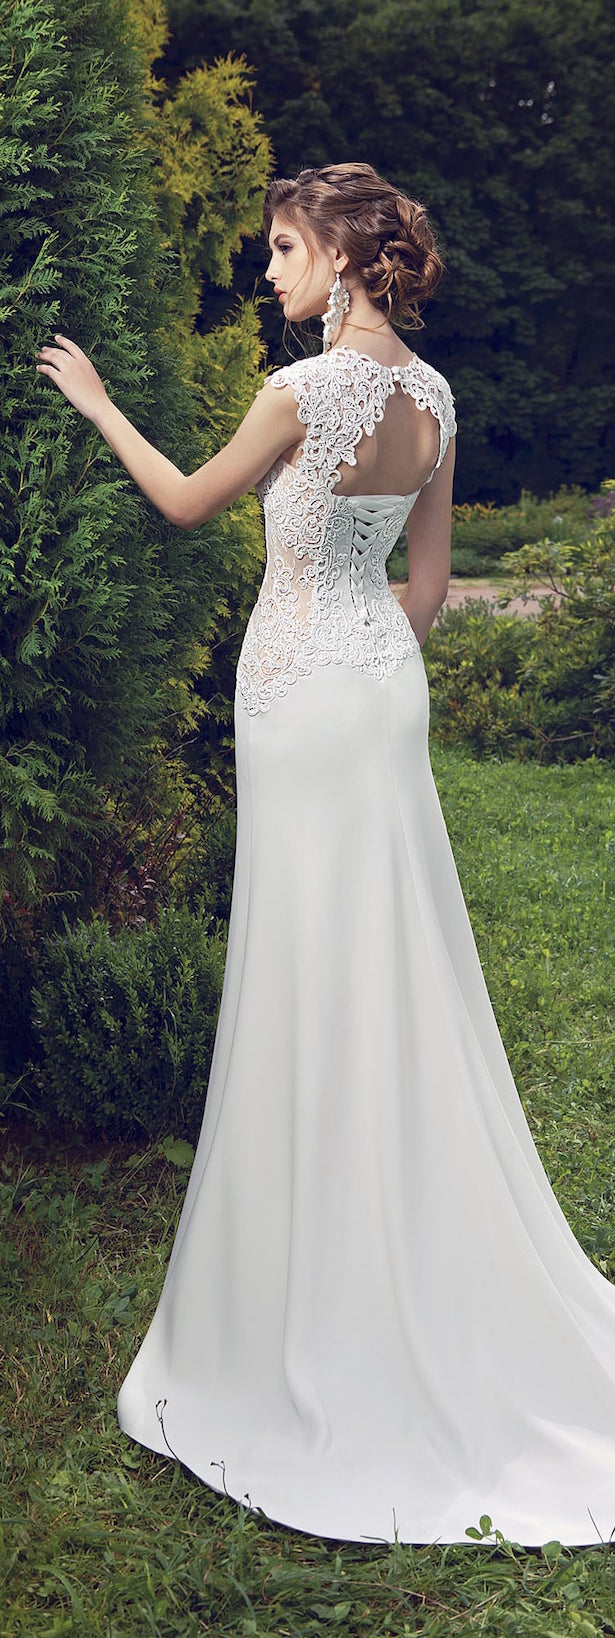 Milva 2016 wedding dresses fairy gardens collection for How to find the perfect wedding dress